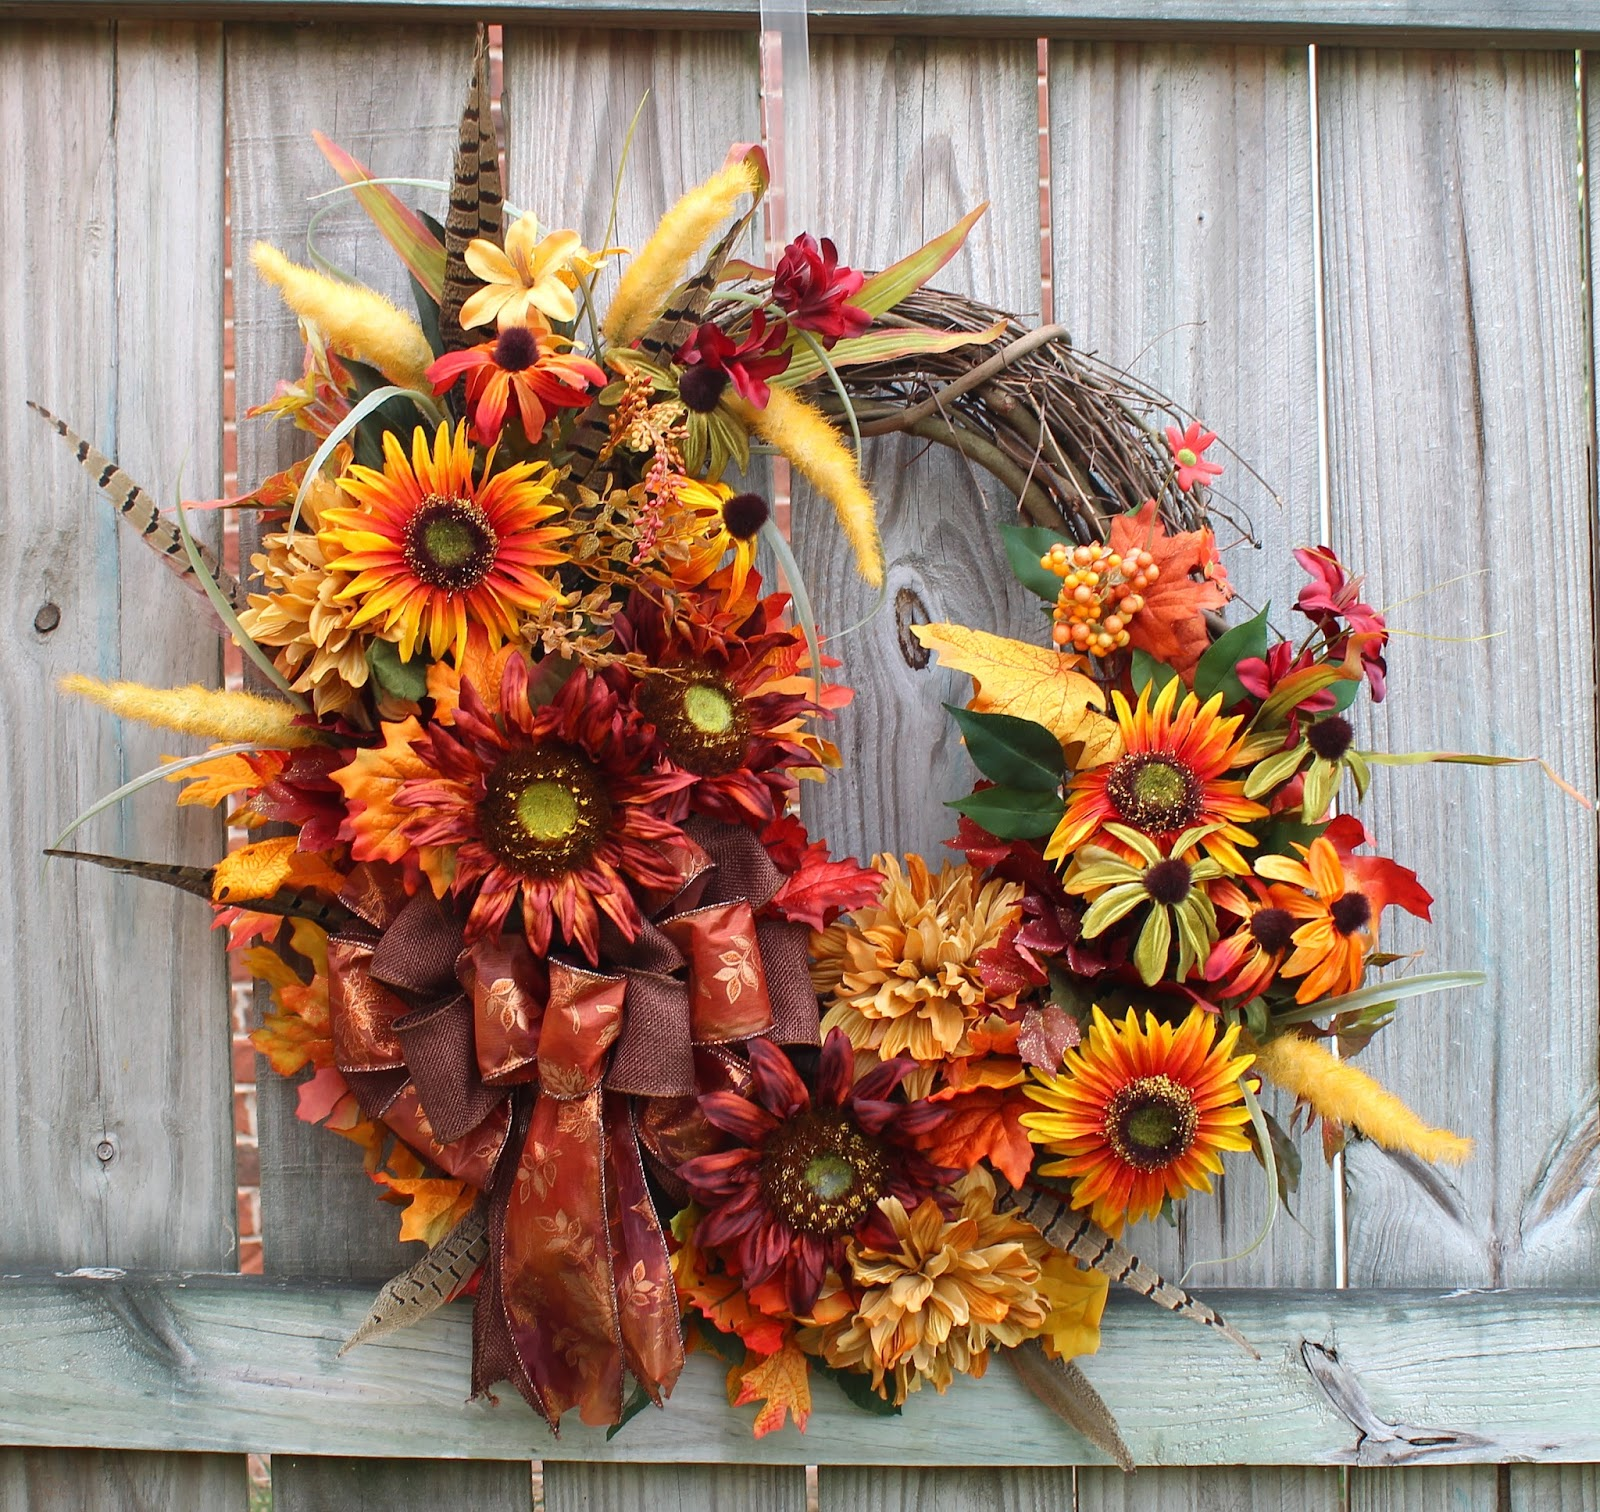 Fall Brown Sunflower Wreath with Indian Blanket Flowers